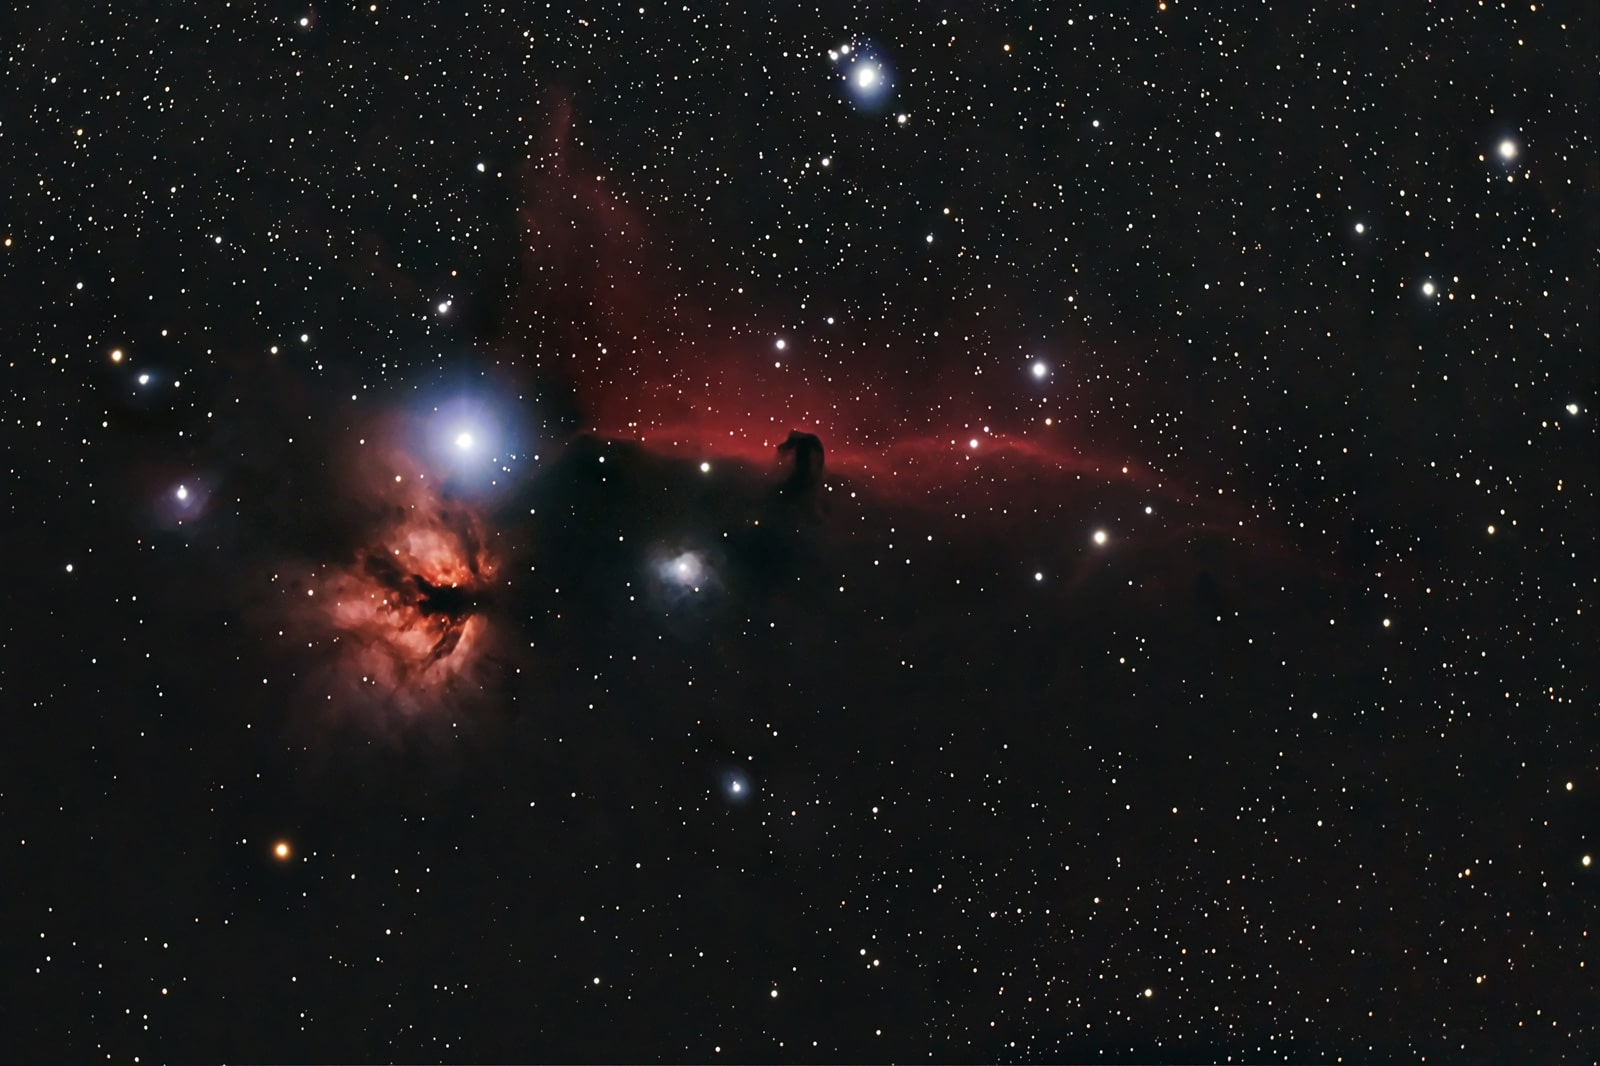 Horse Head and Flame Nebulae. November 2010